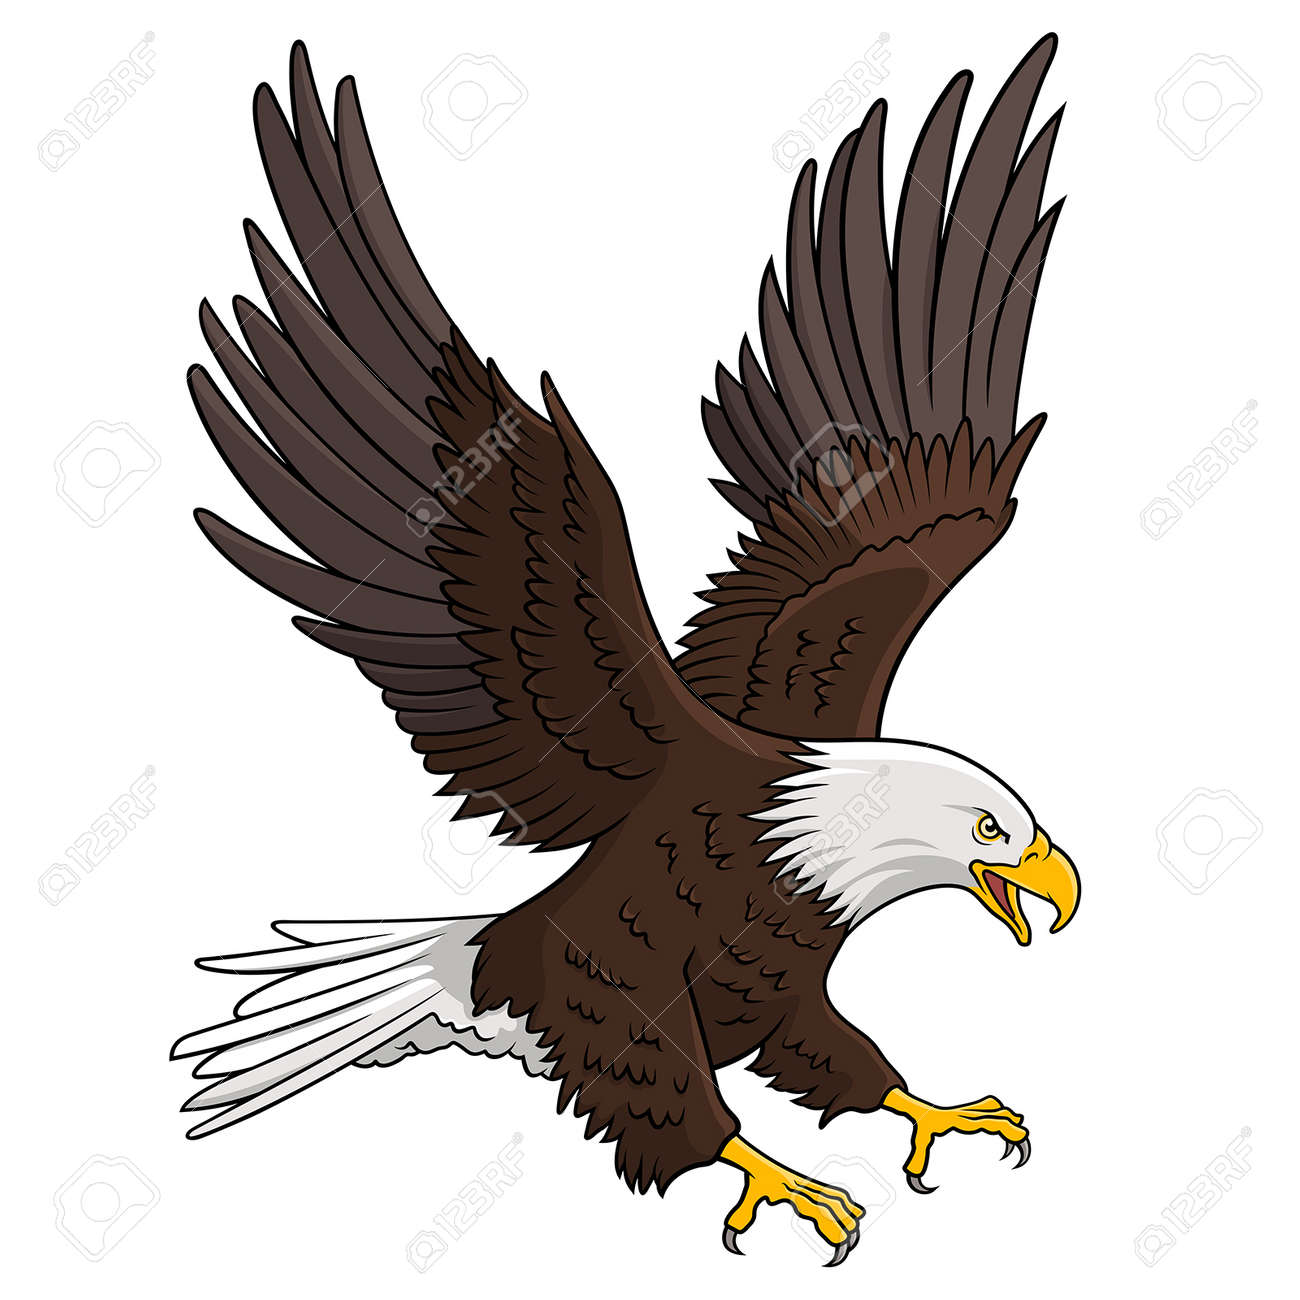 Bald Eagle Isolated On White This Illustration Can Be Used As